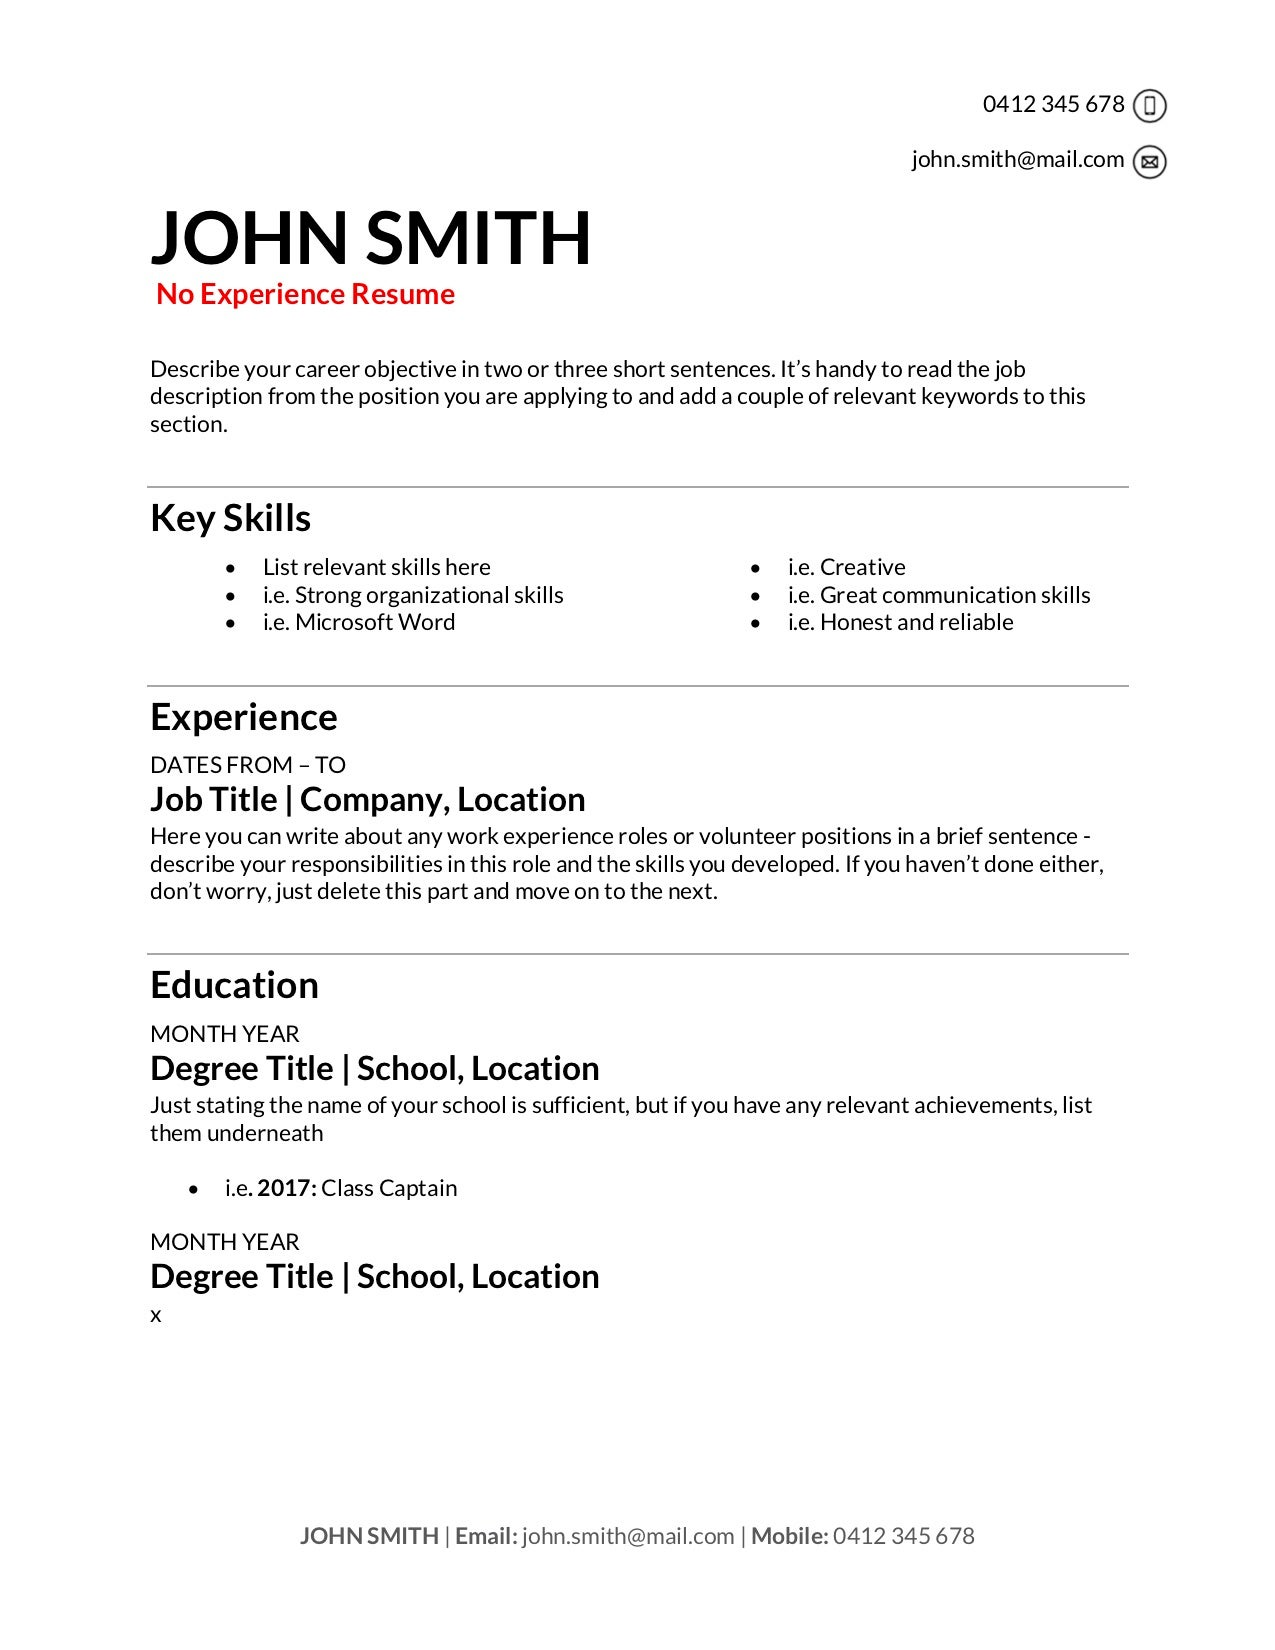 free resume templates to write in training au company sample format no experience new Resume Company Resume Sample Format